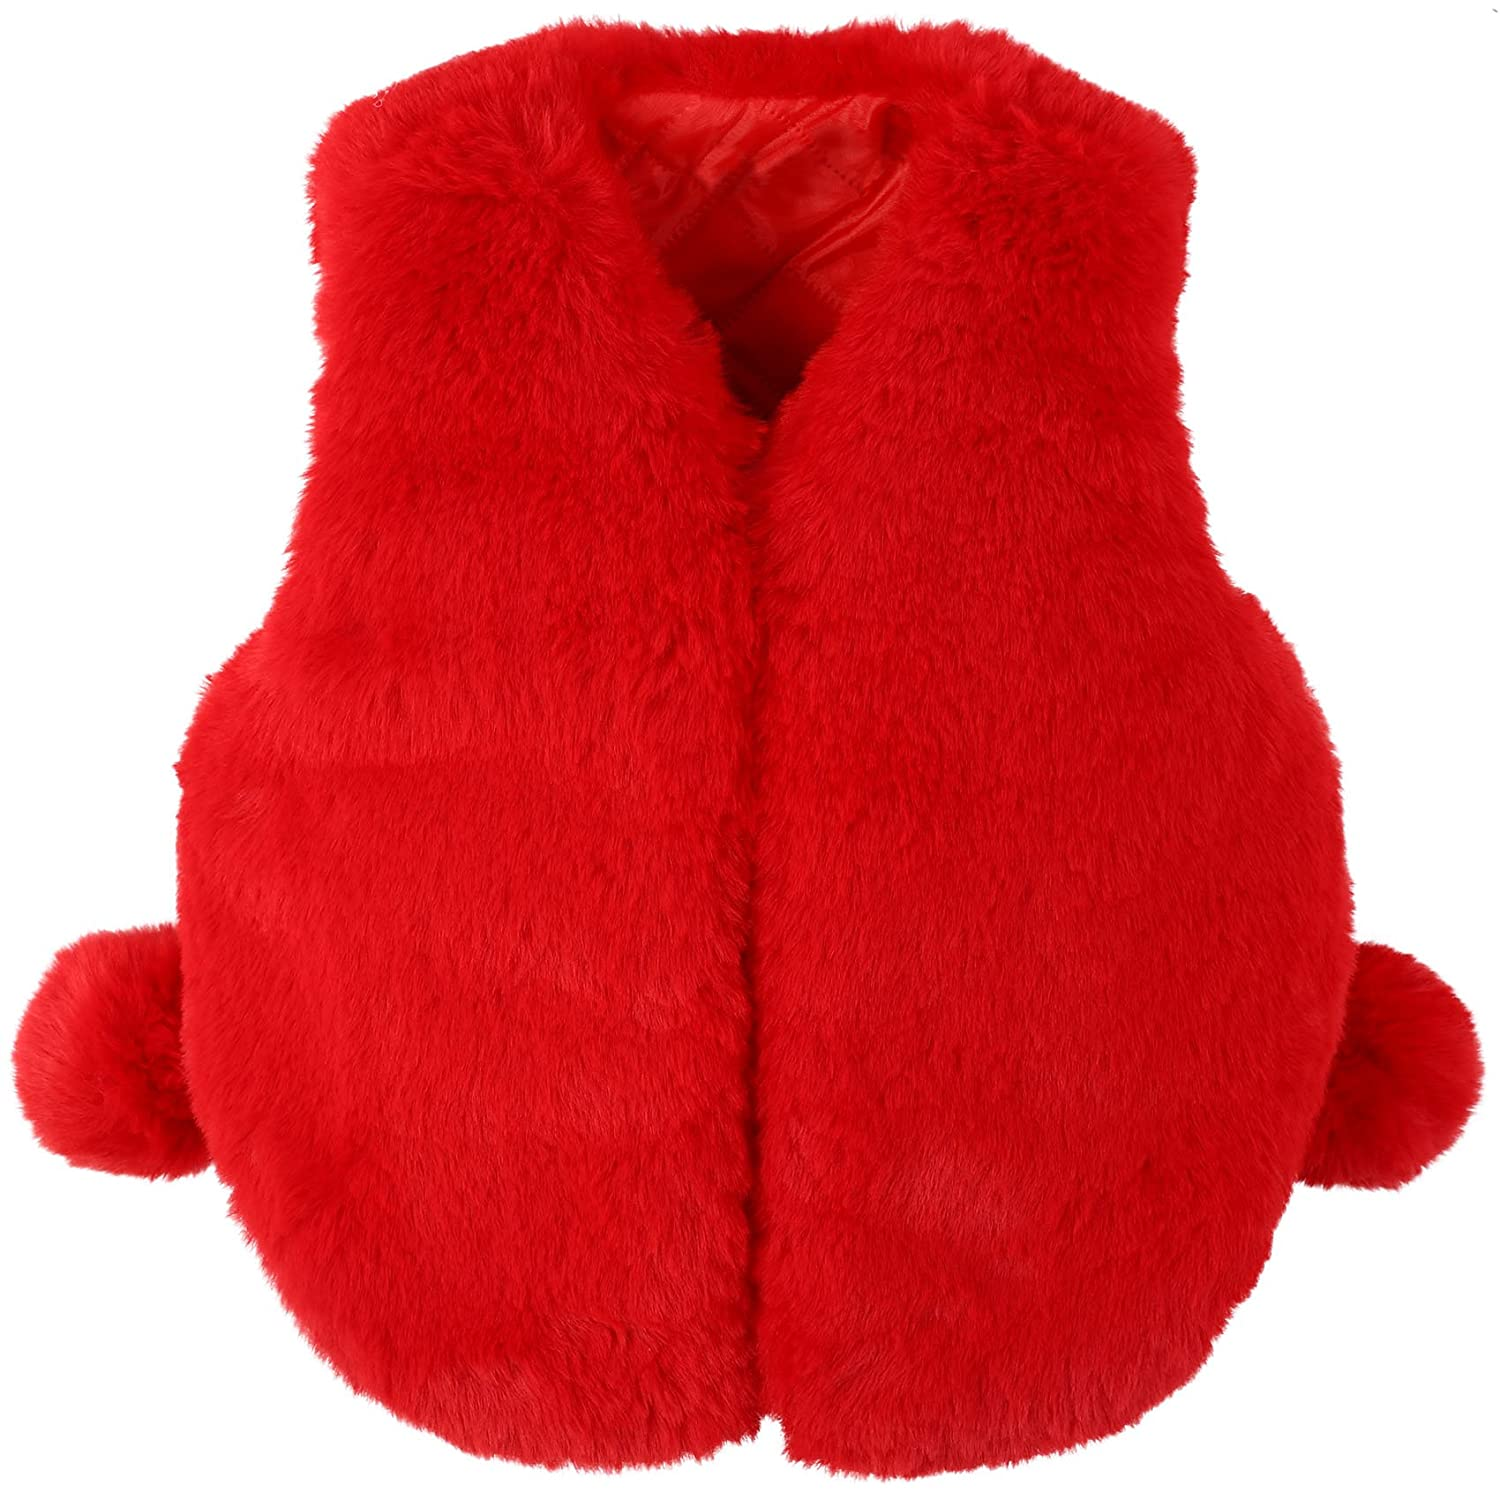 Ephex Toddler Girls' Soft Fur Gilet Jacket Vest Sleeveless Outwear with Cute Ball Age 2-11T